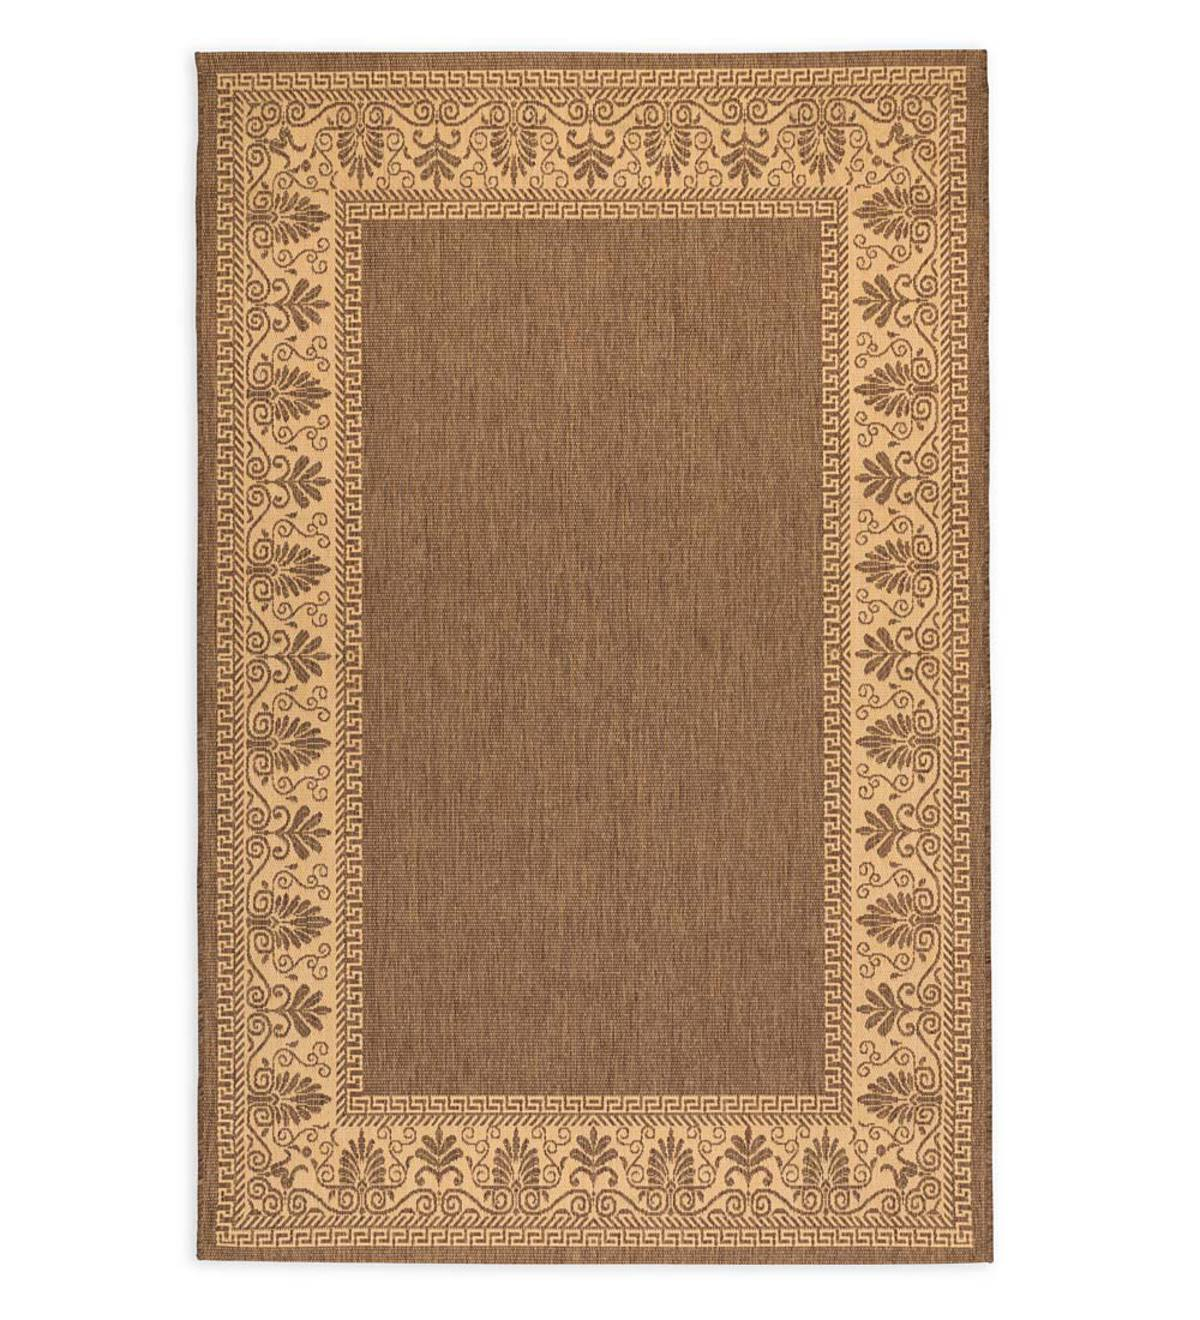 "Veranda Border Indoor/Outdoor Rug, 5'3""x 7'6"" - Cocoa"